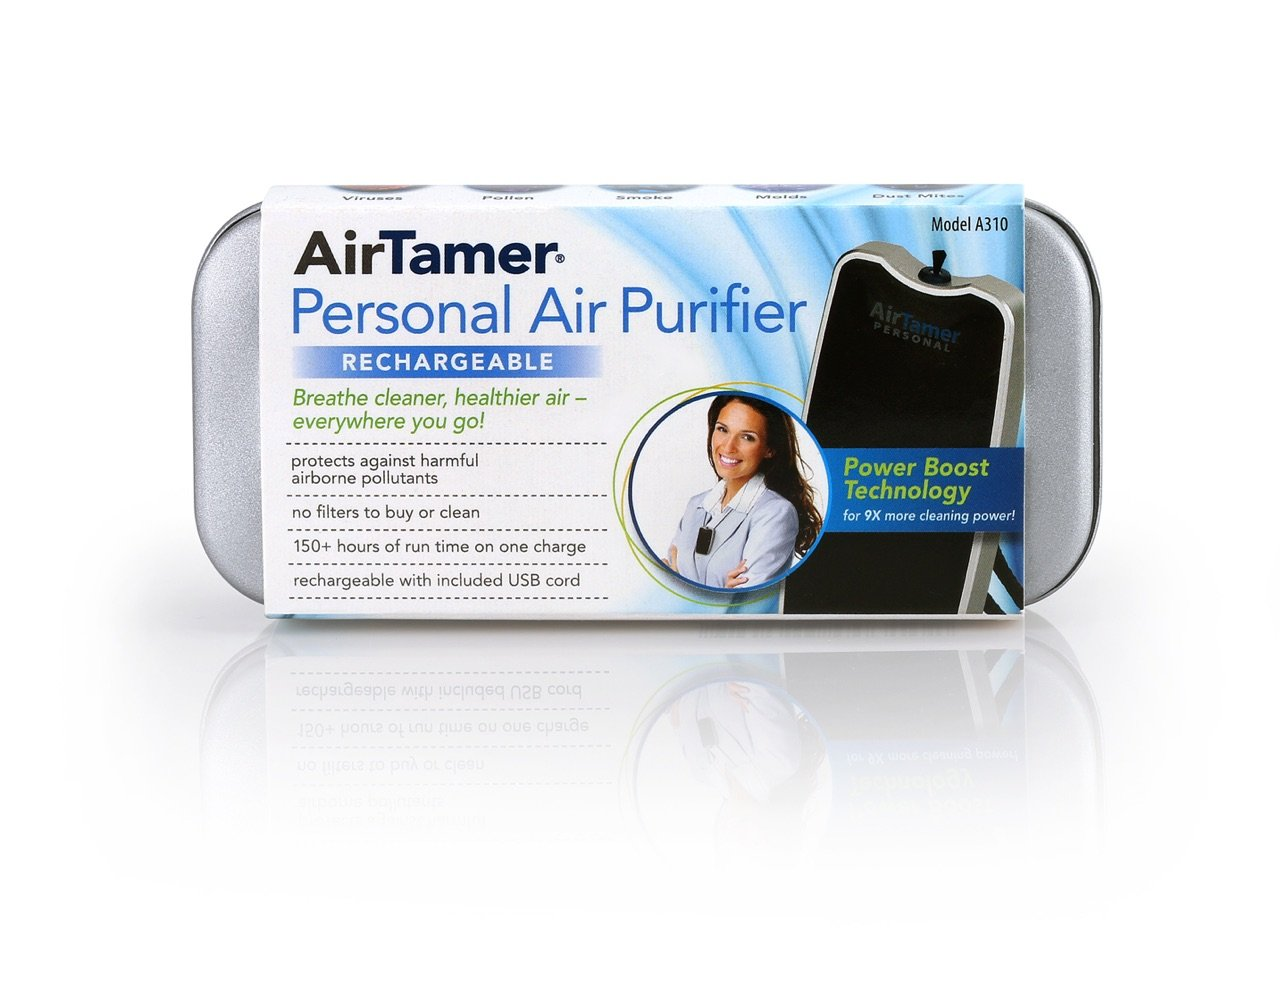 AirTamer A310 |Personal Rechargeable and Portable Air Purifier | Negative Ion Generator | Purifies Air Eliminating Germs, Dust, Viruses, Bacteria, Allergens, Mold, Odors, and More | Black by AirTamer (Image #8)